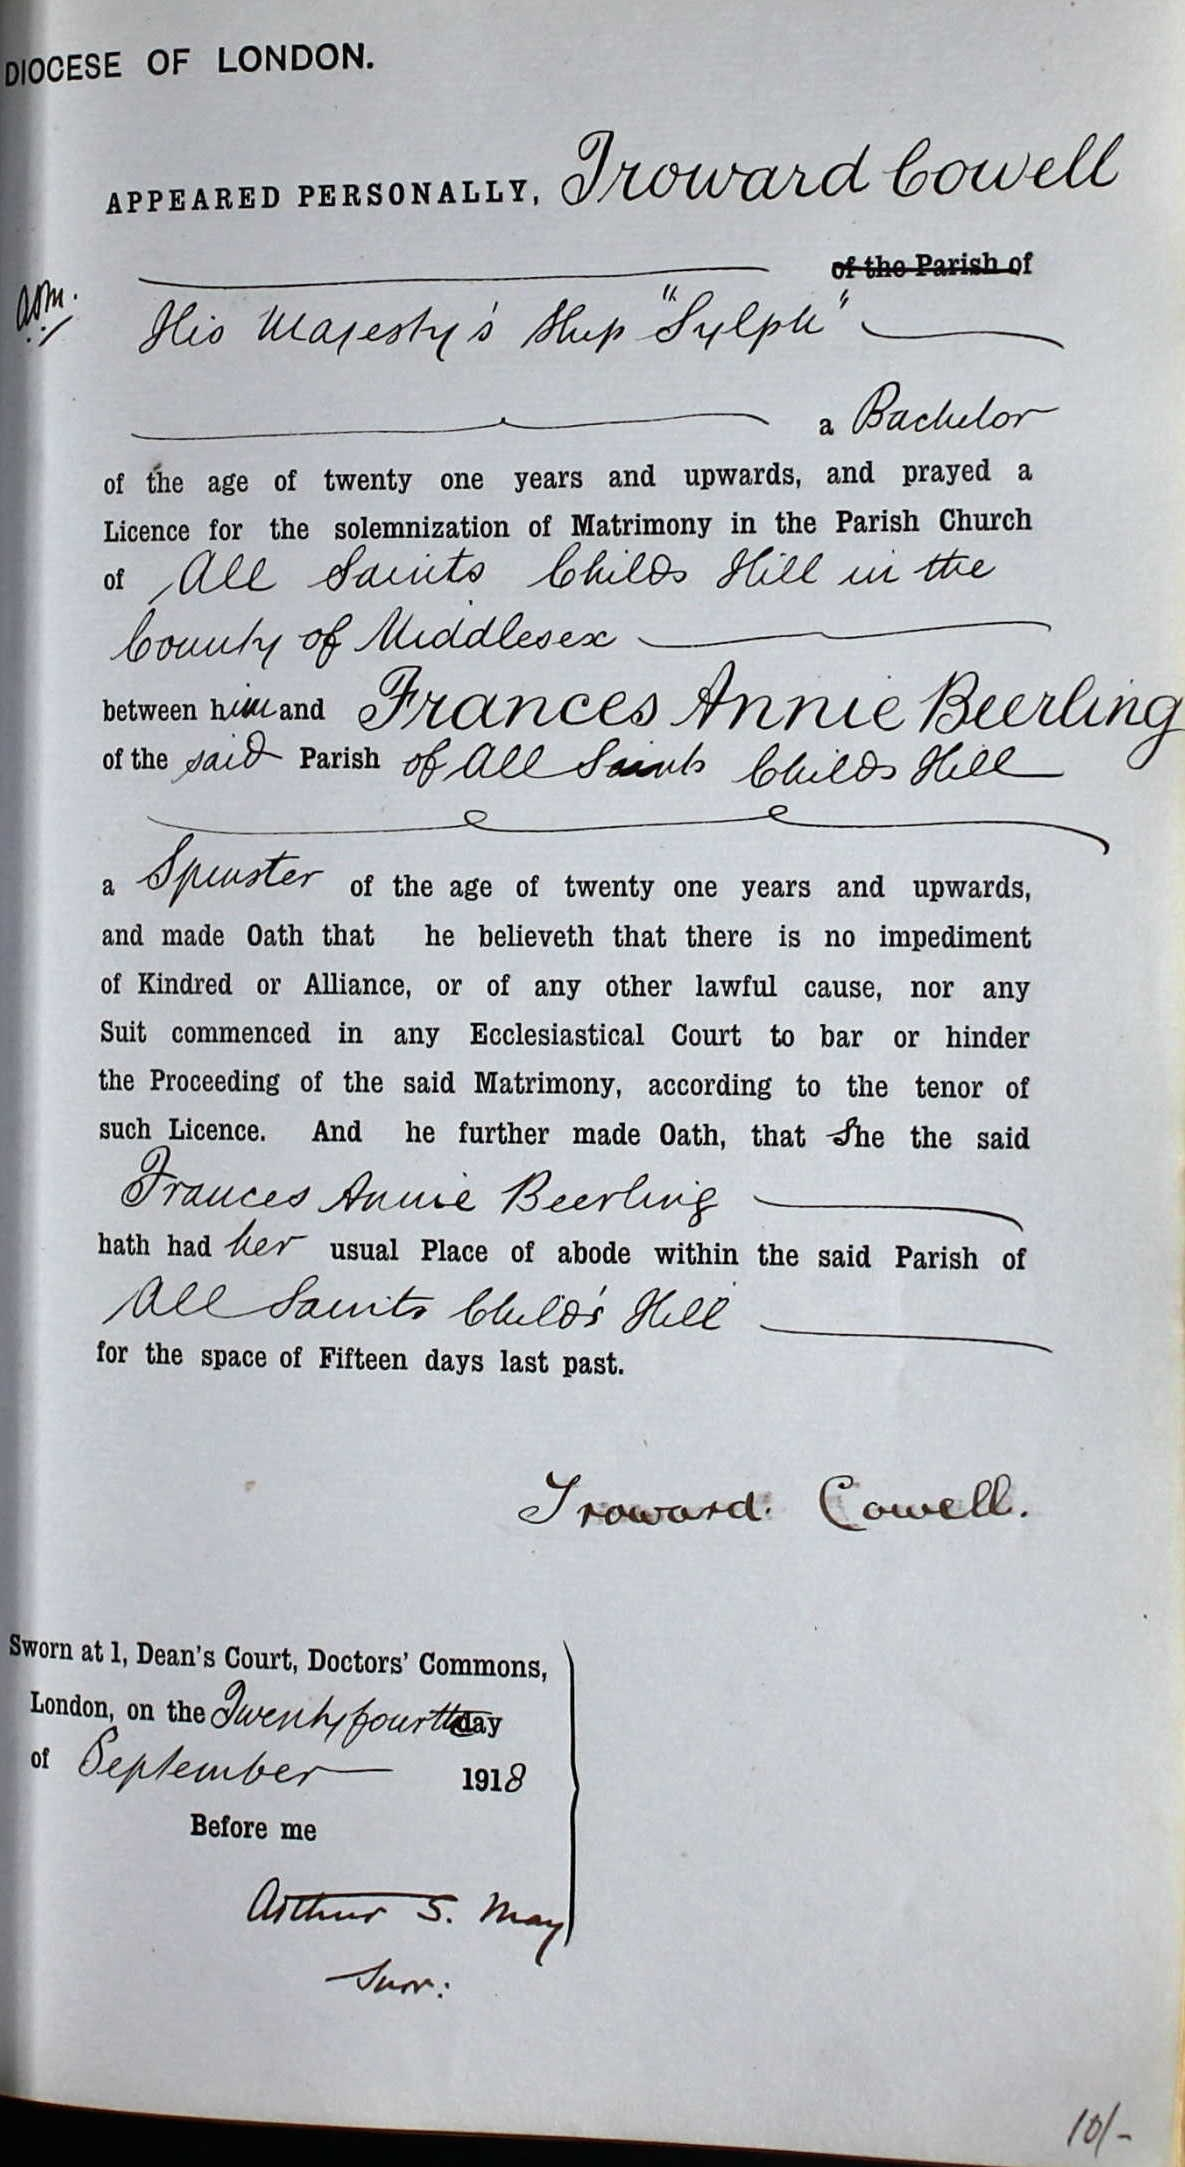 Troward Cowell - Frances Beerling - Marriage Bond